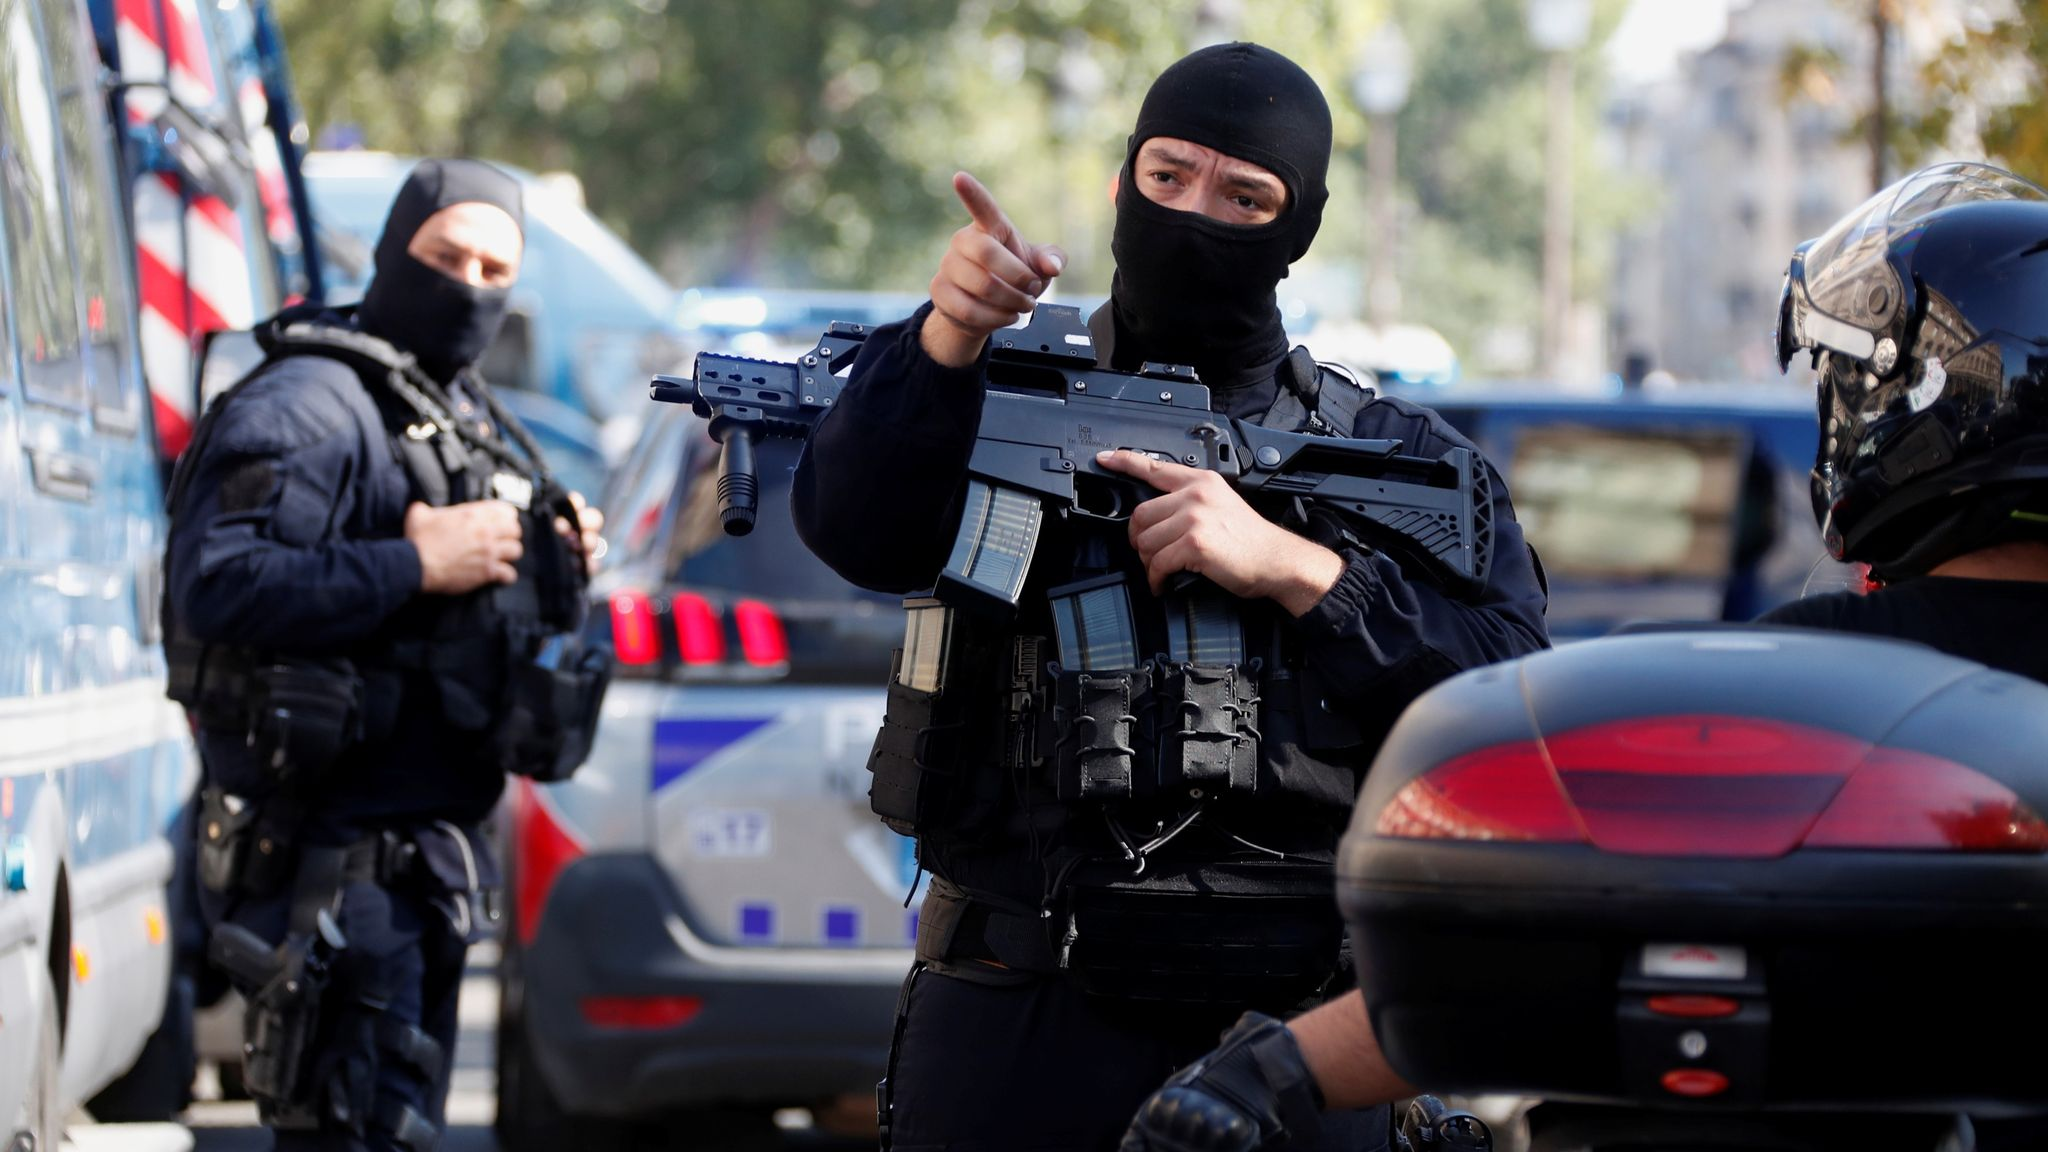 Counter terrorism ـ the renewed potential for terrorist attacks in Europe